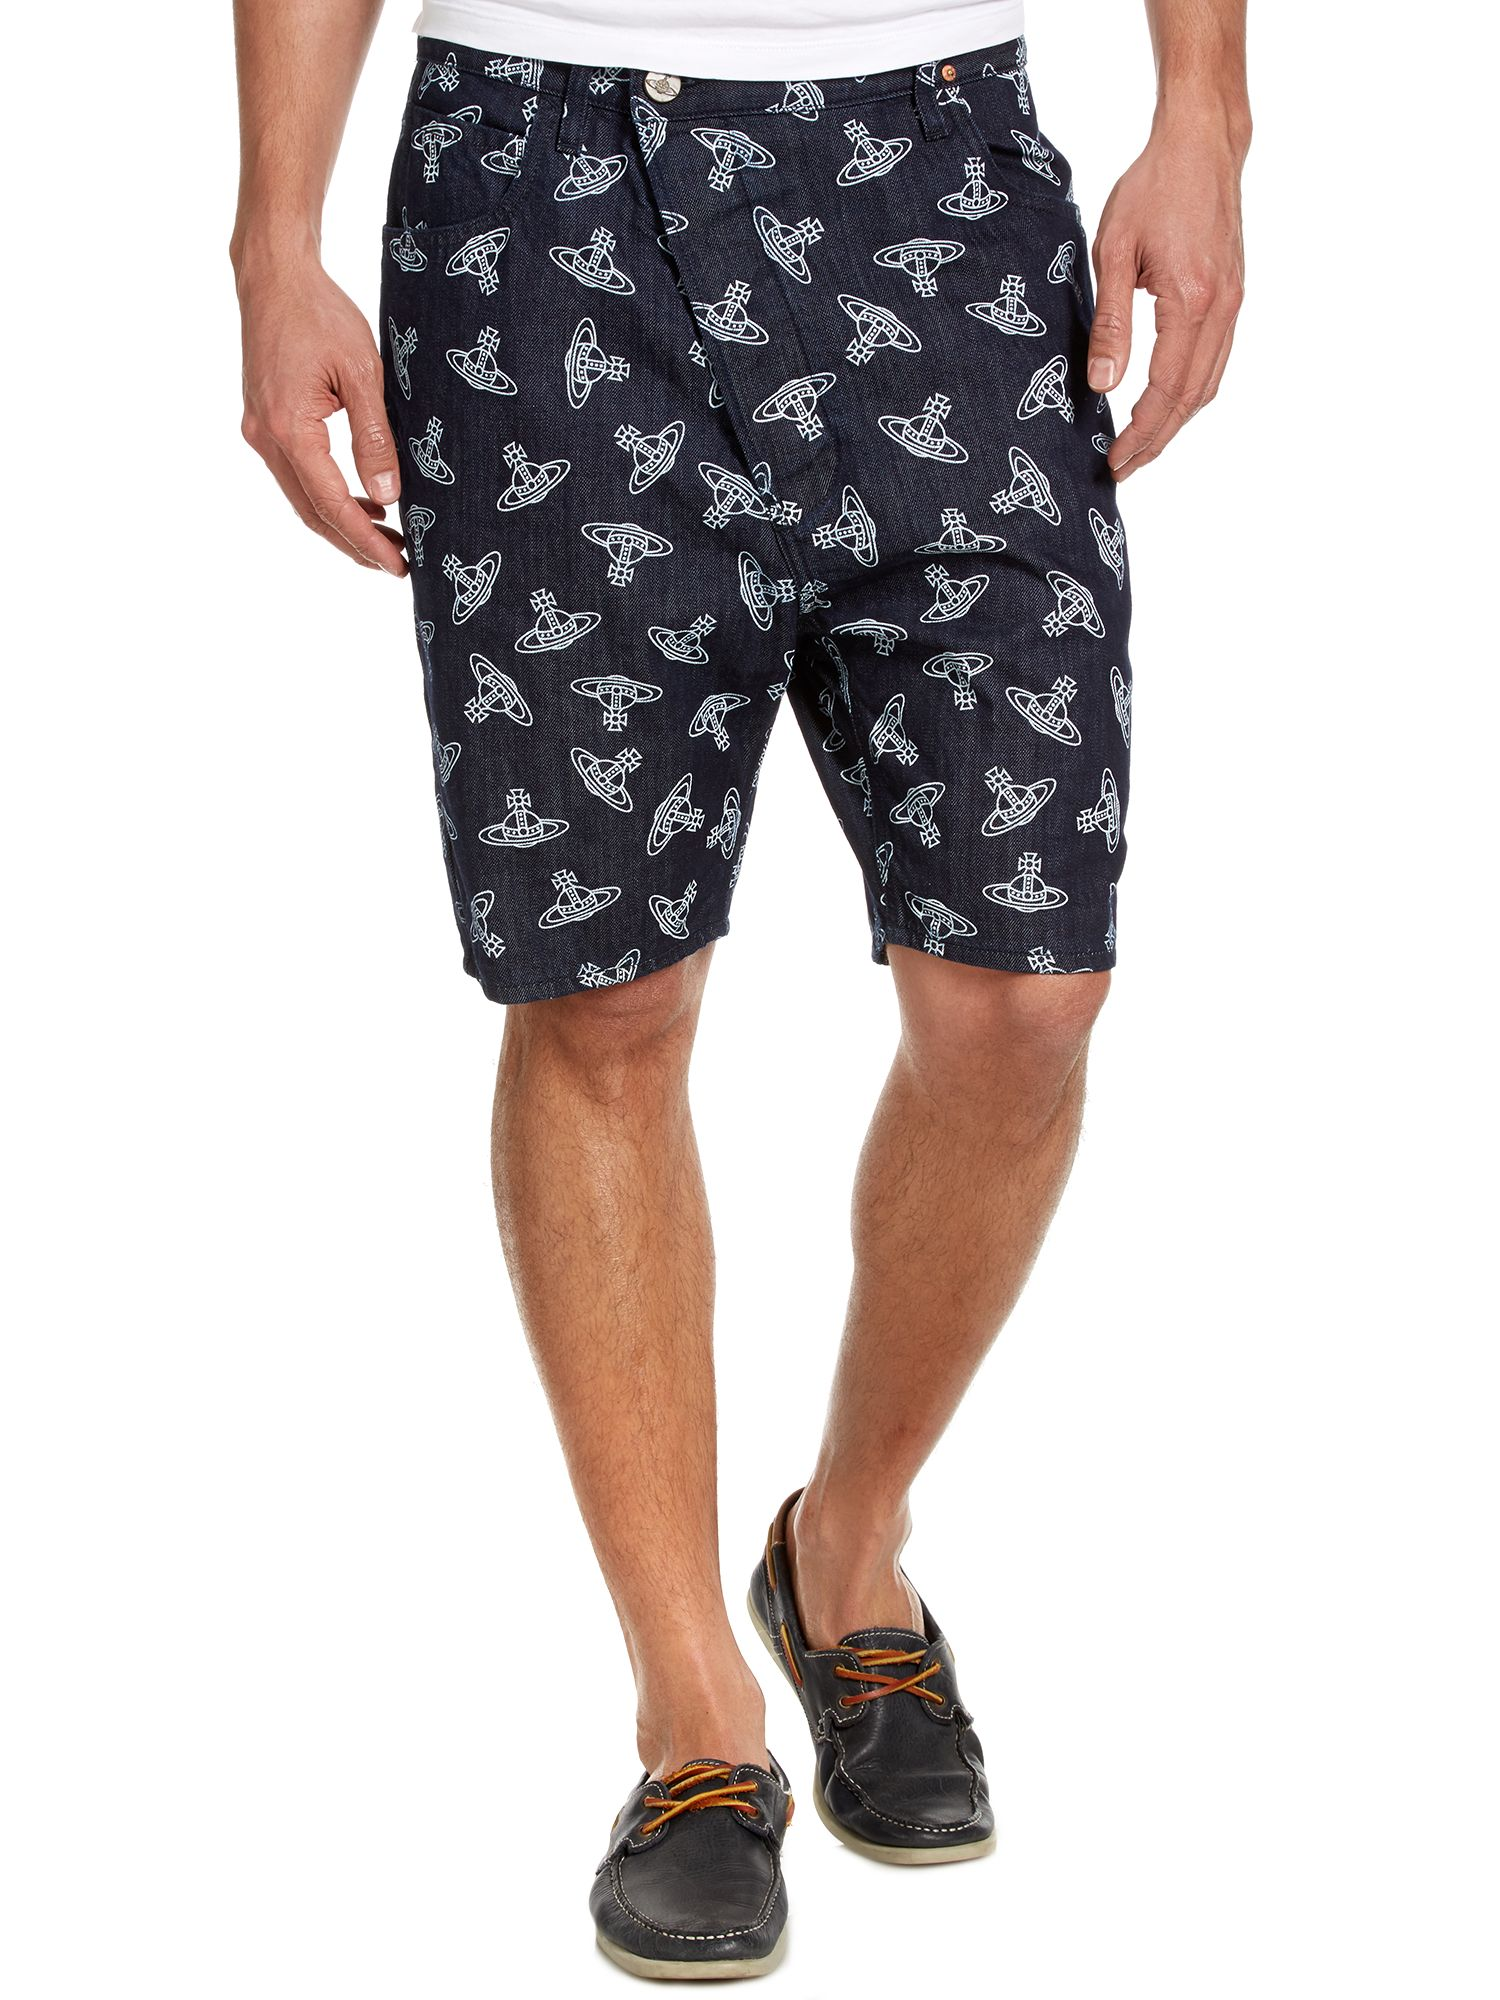 All over orb print shorts